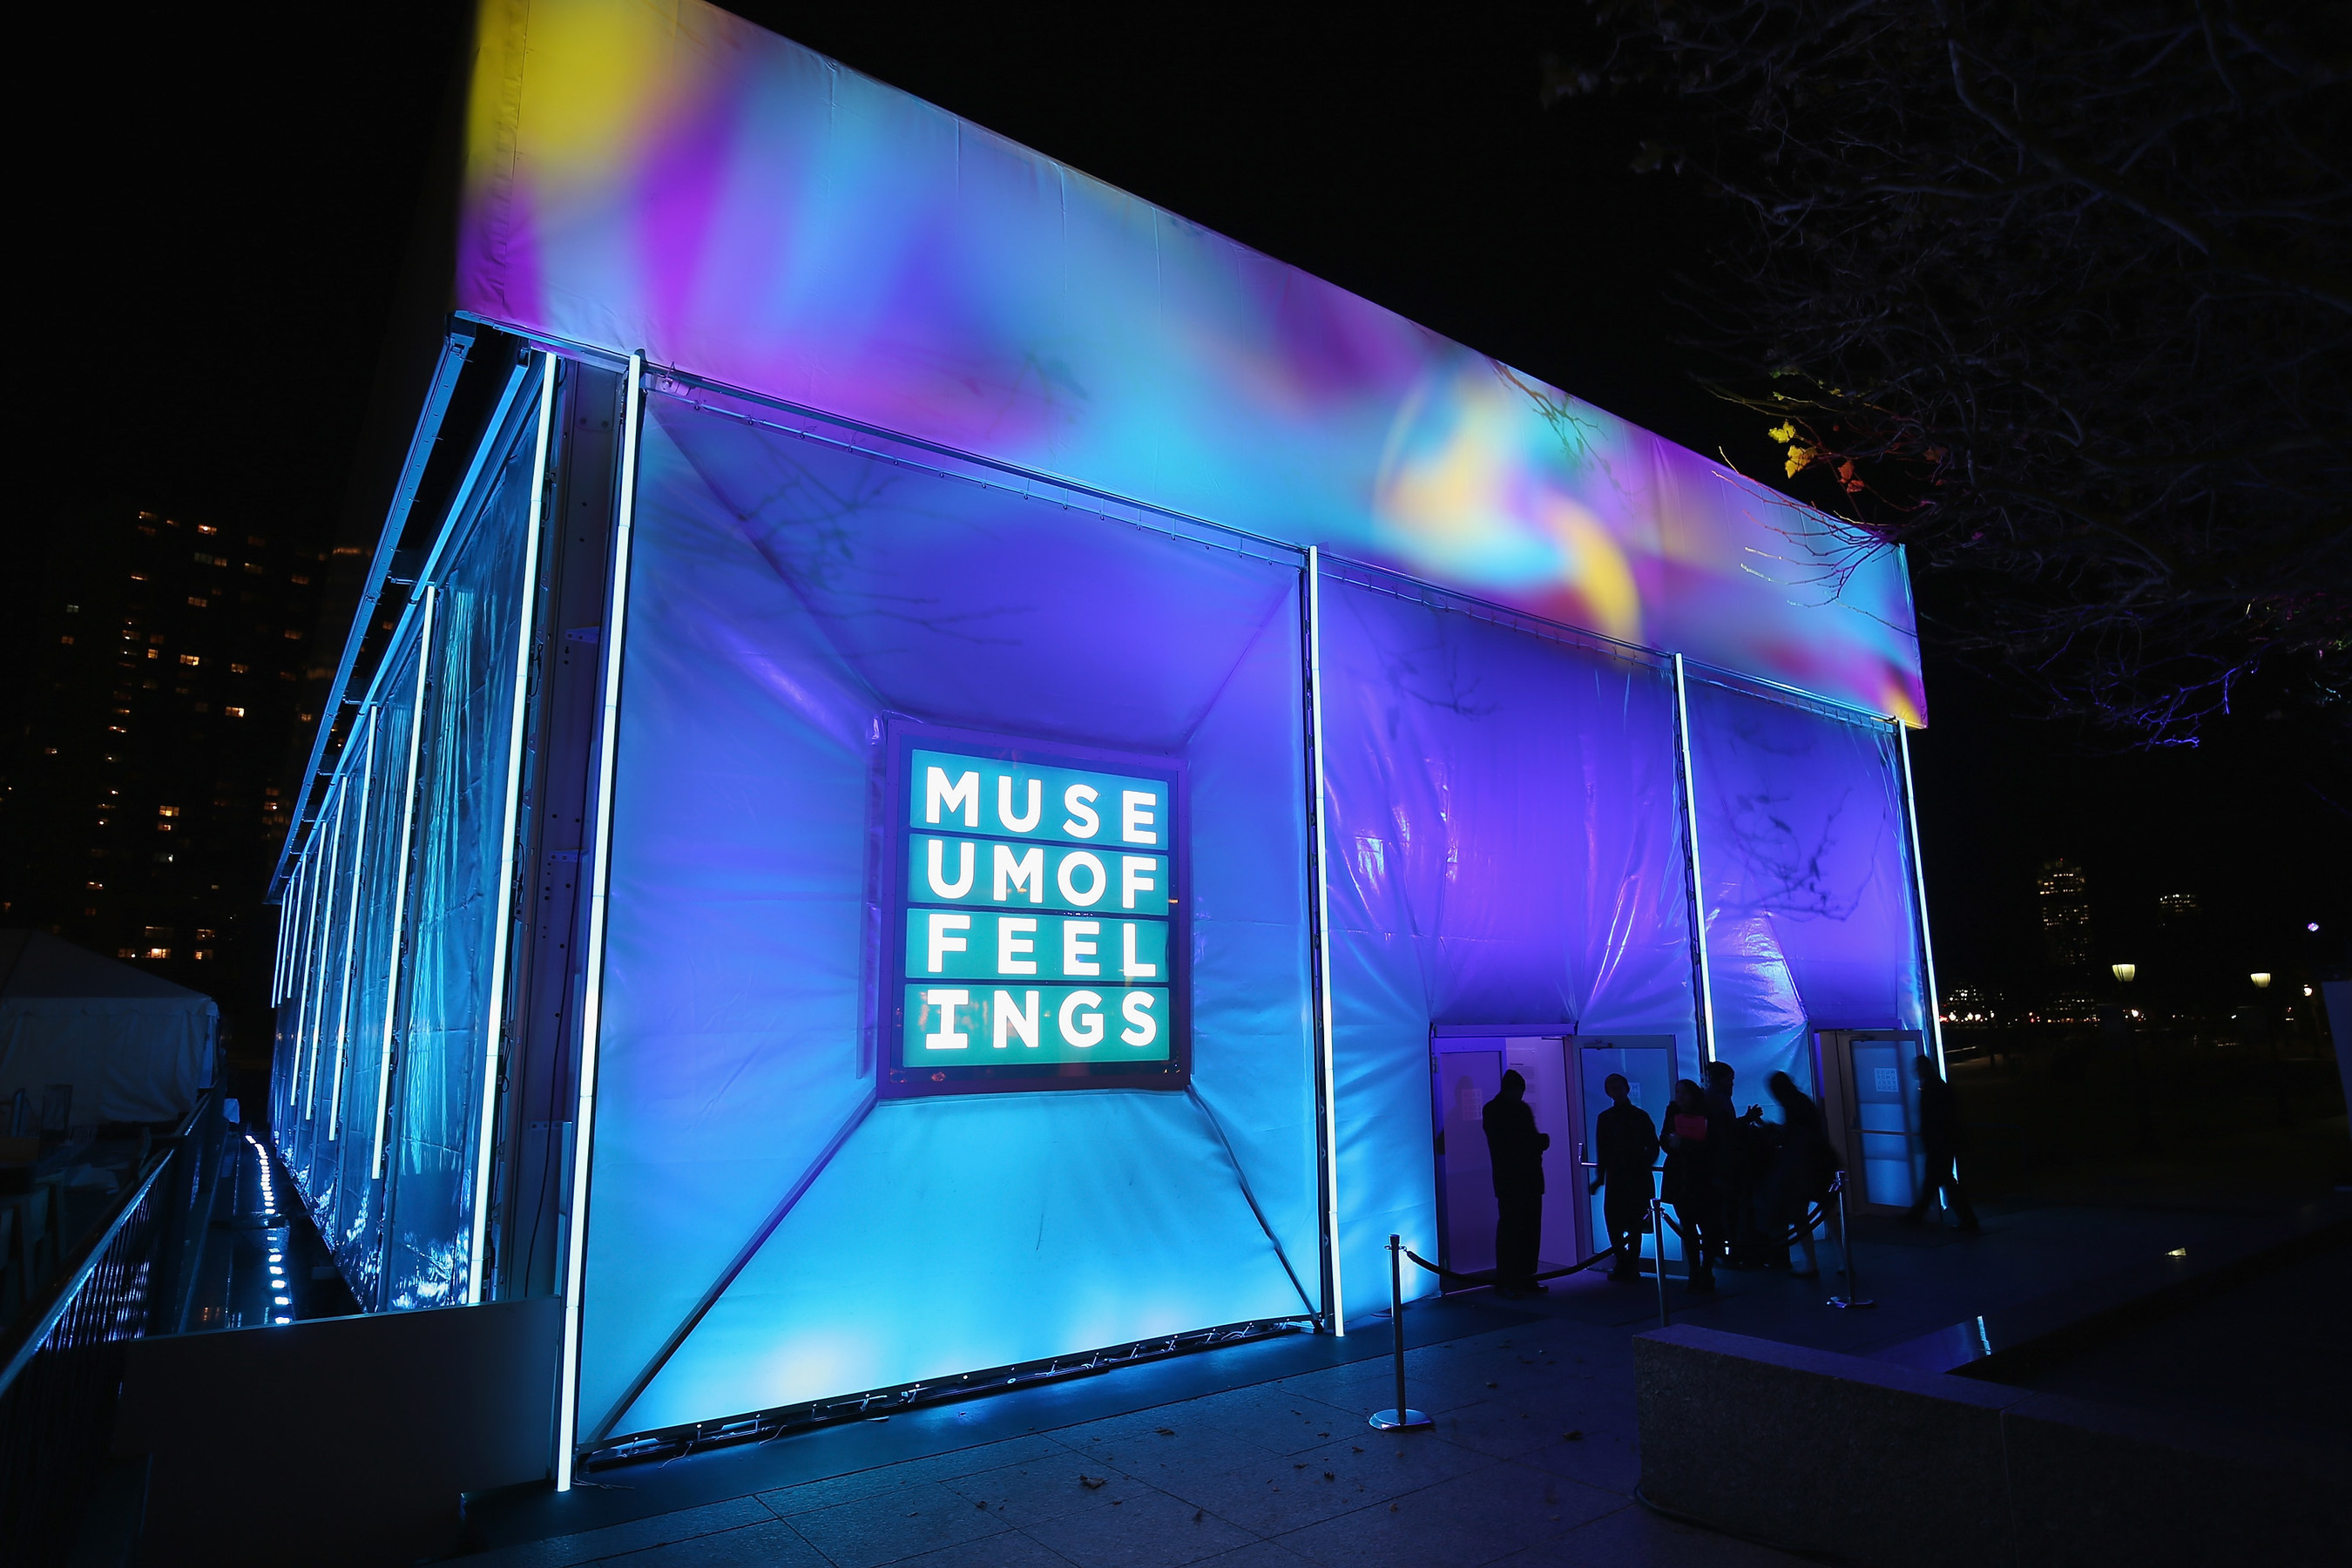 The Museum of Feelings brought emotion and scent to life through an engaging and immersive experience, inspired by Glade(R) fragrance during the 2015 holiday season.